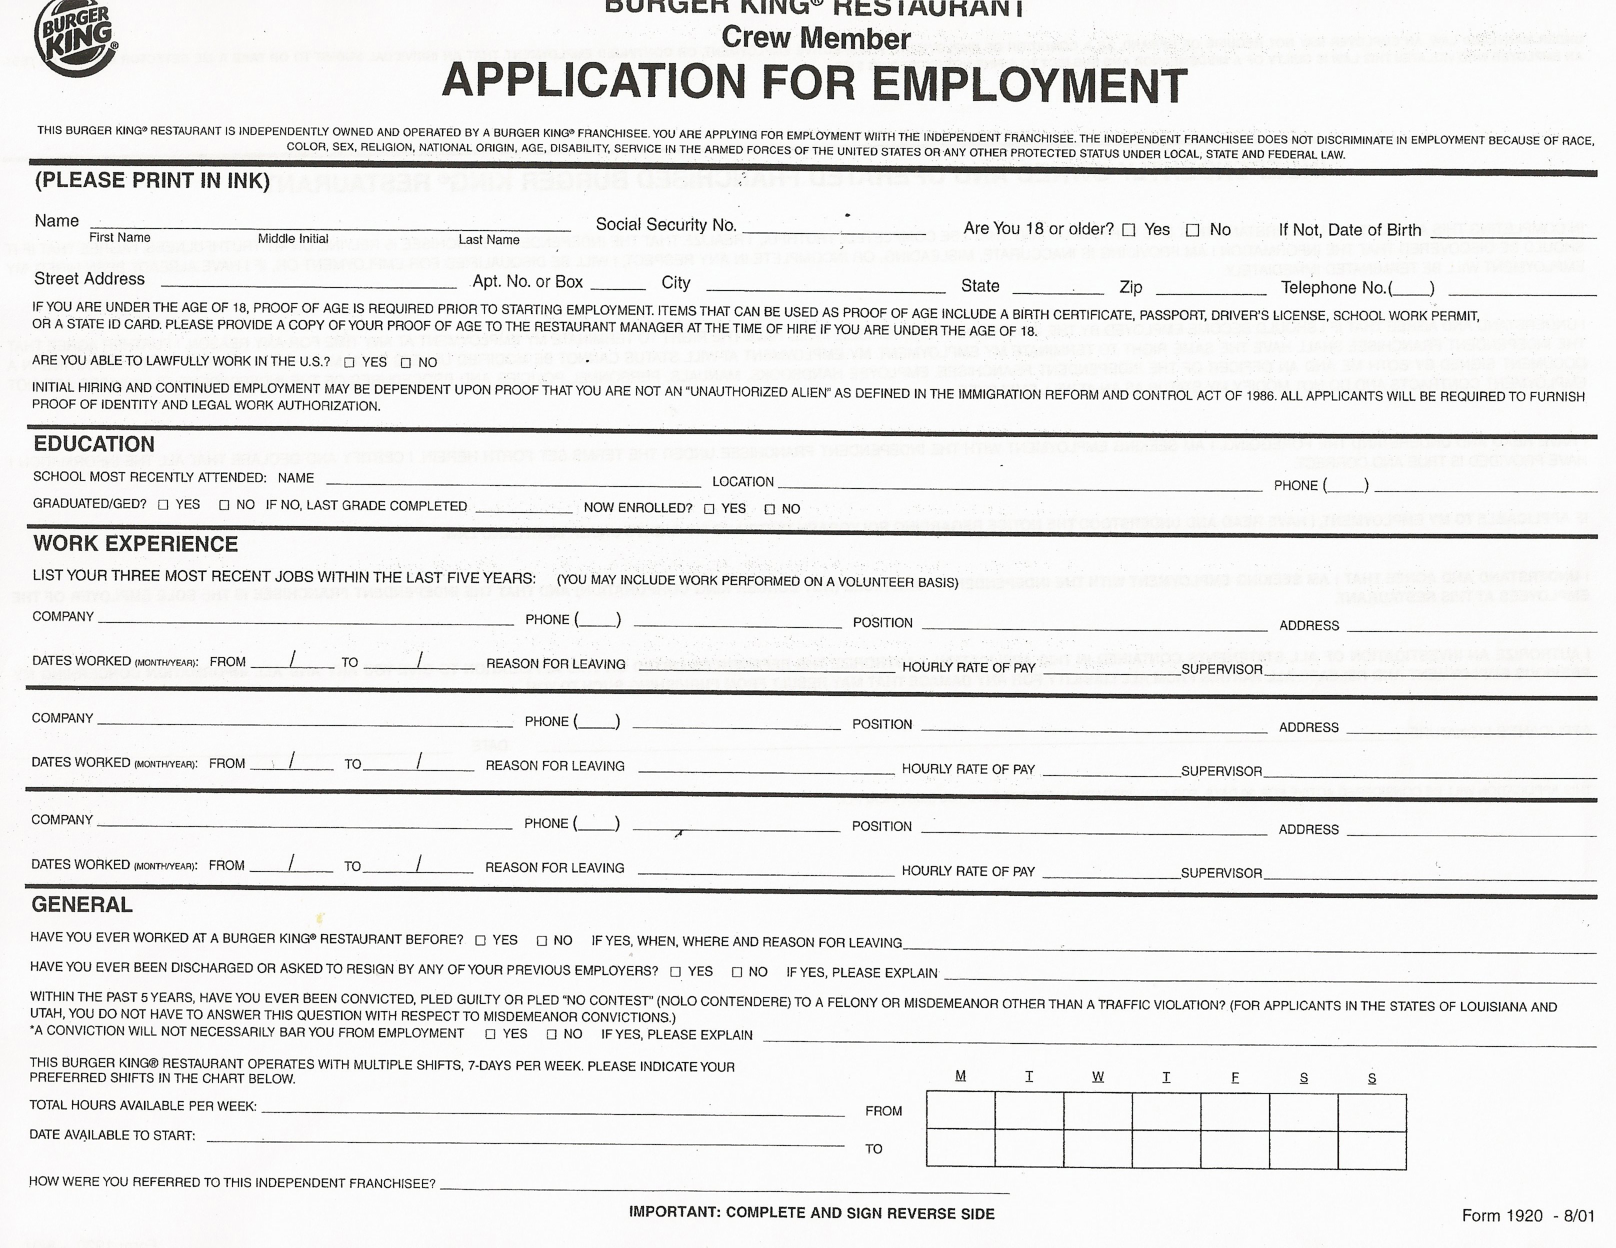 Download the Job Application Form Template from Vertex42 – Printable Application for Mployment